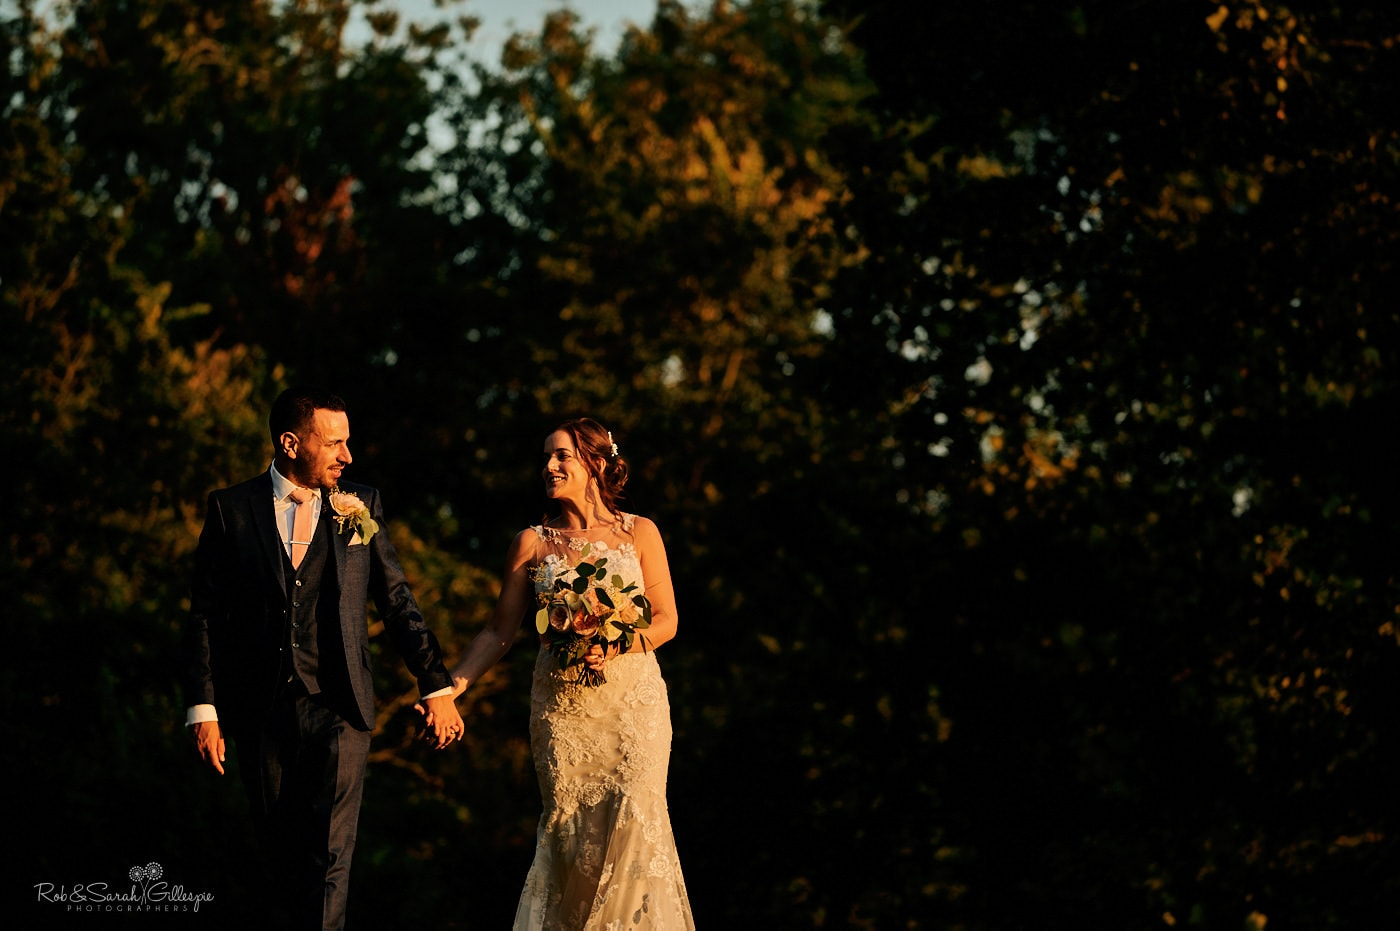 Bride and groom walk through gardens at Gorcott Hall on a beautiful summer evening